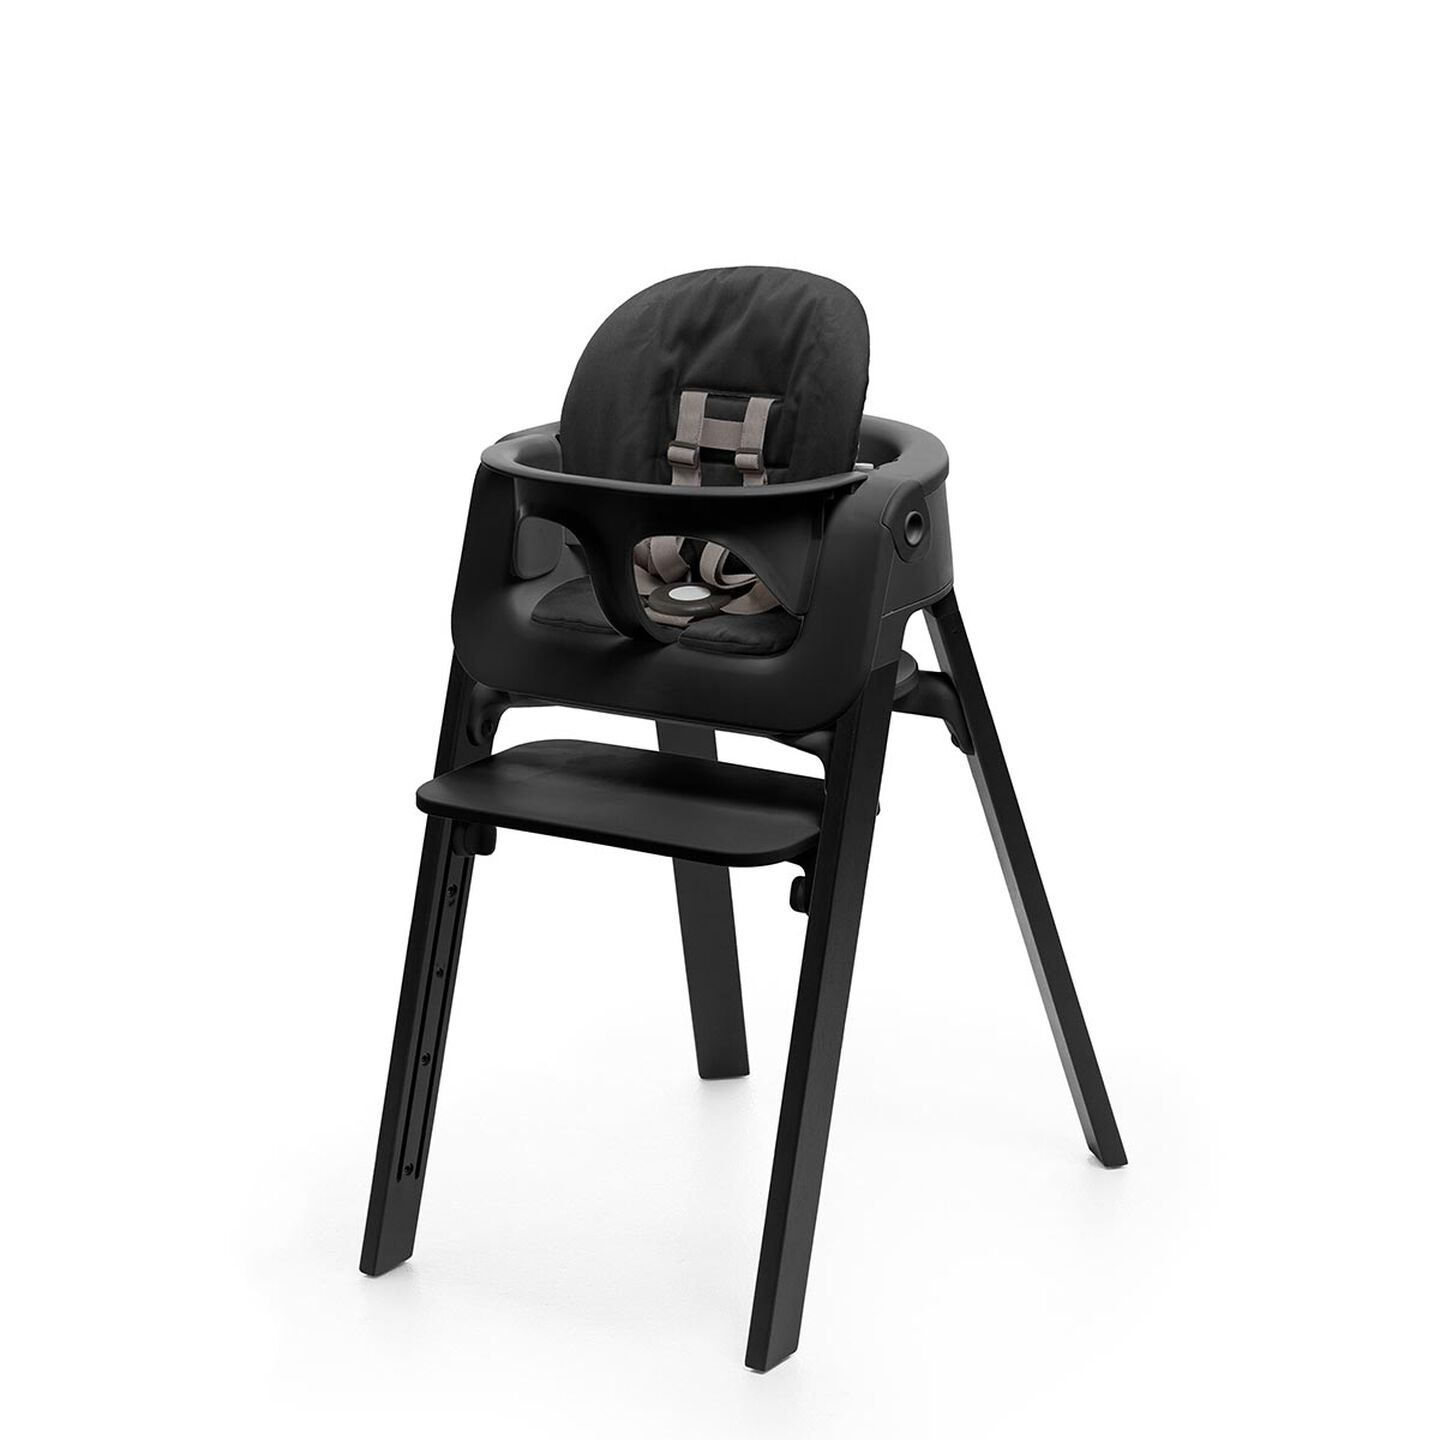 Stokke® Steps™ Baby Set Cushion Black, Black, mainview view 2